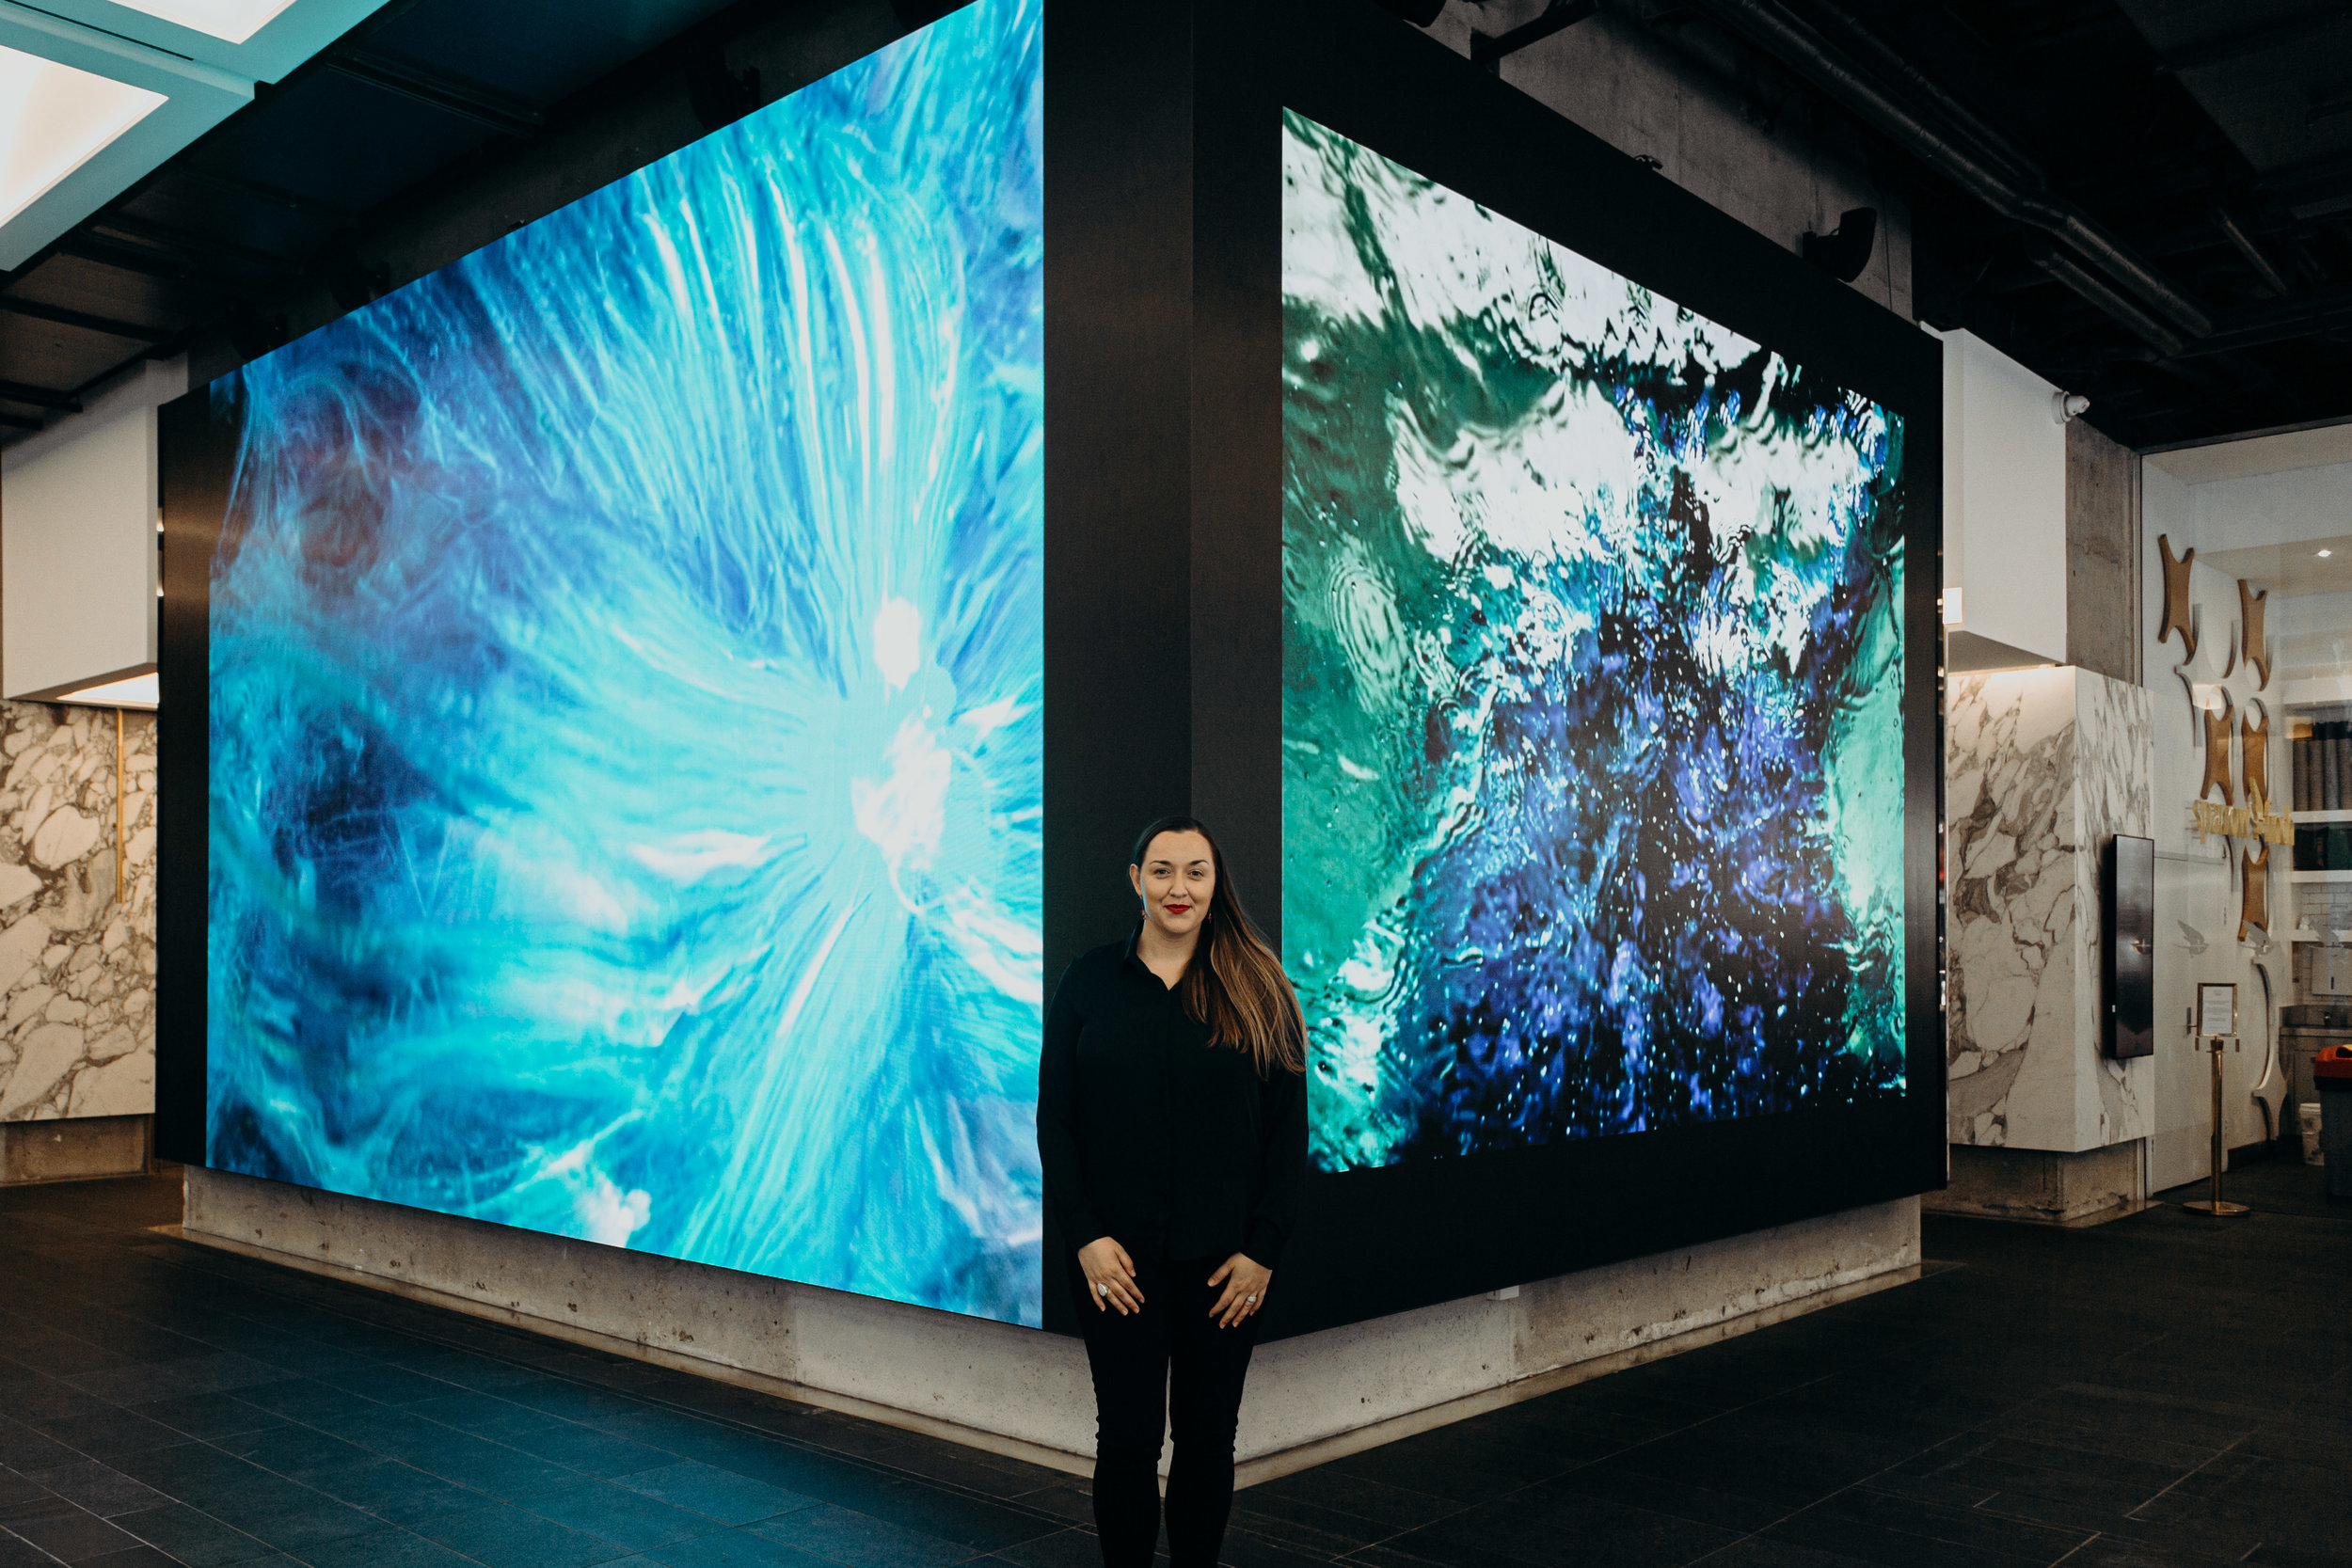 Stefania Shevchenko with her digital artwork, Space - Ocean Continuum. Image credit: Art Pharmacy Consulting / Anwyn Howarth.